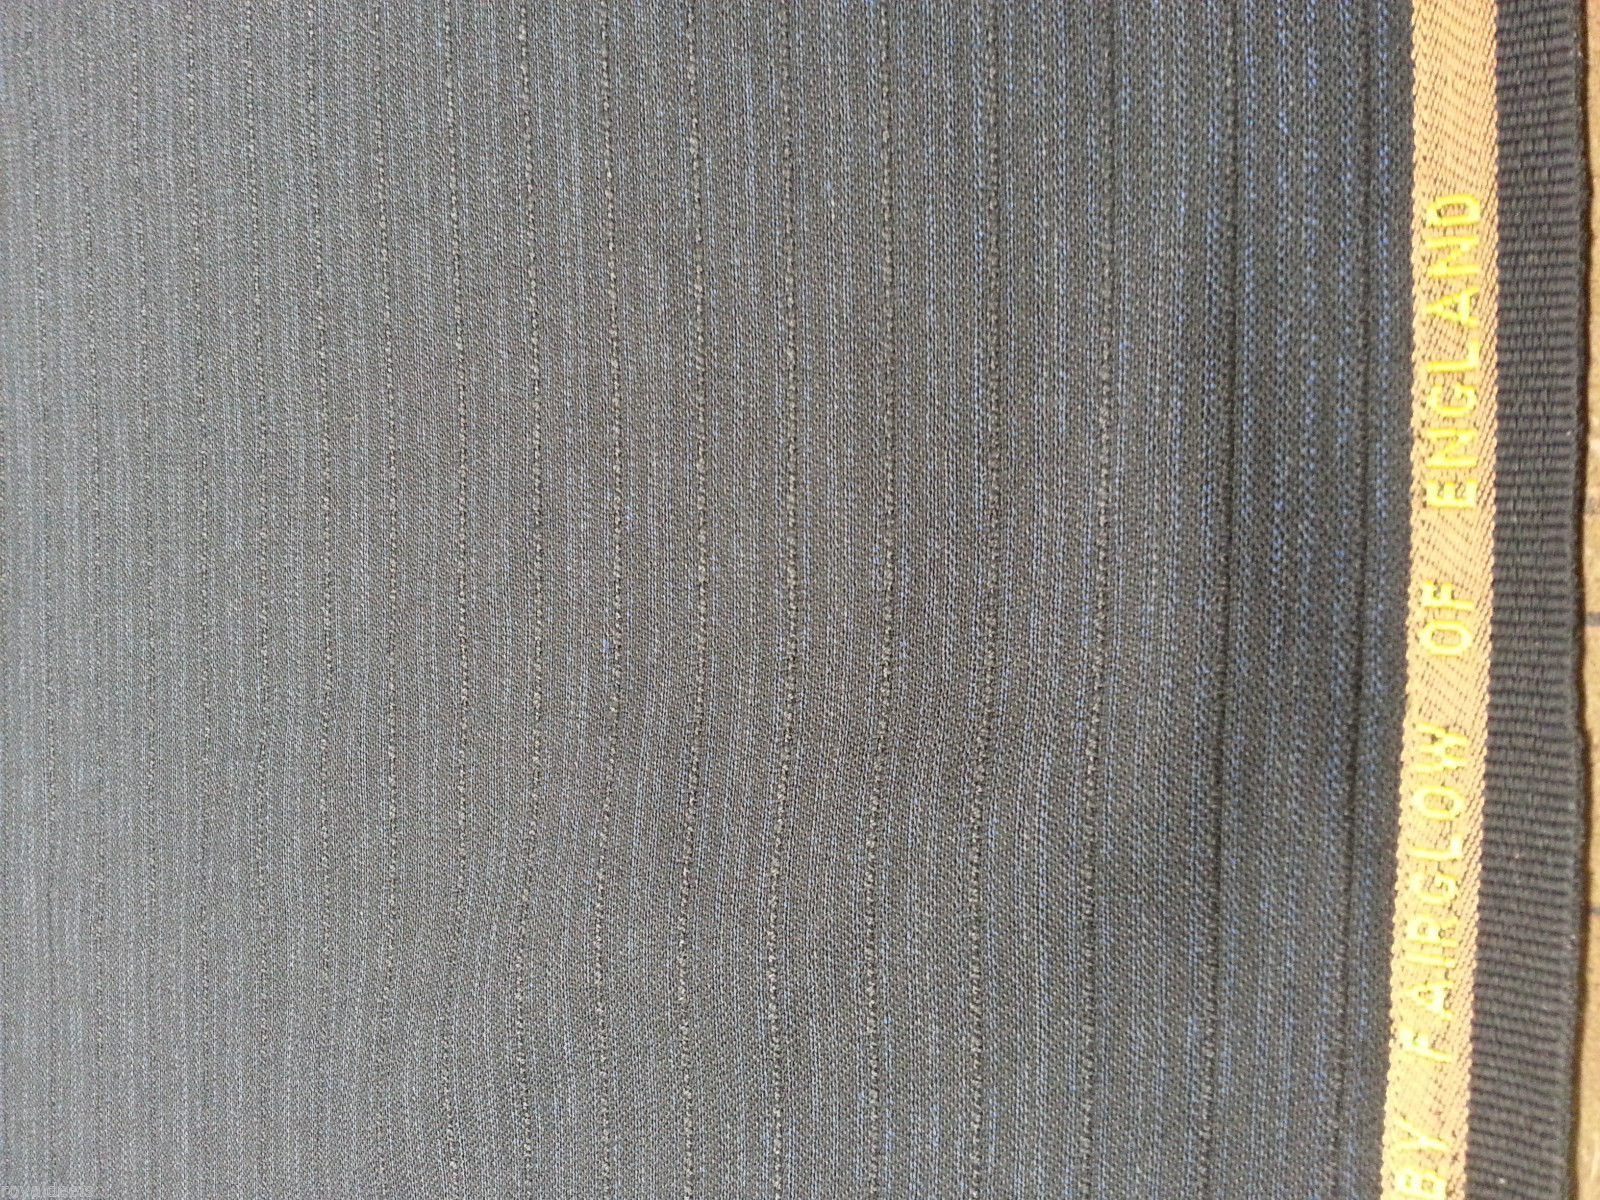 super fine blue grey  english wool suit fabric 5 Yard  for men and women